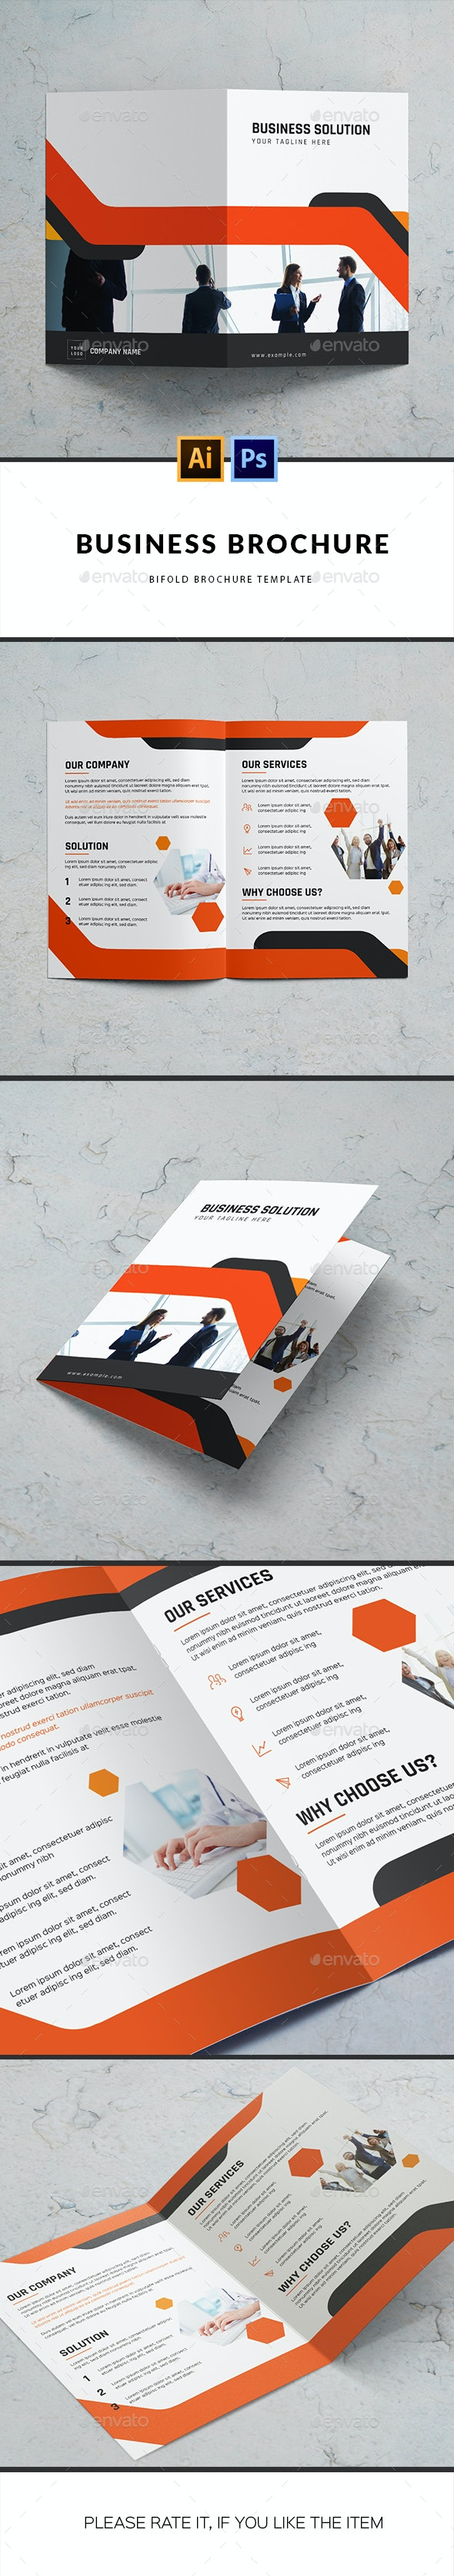 Business Solution Brochure Template - Corporate Brochures